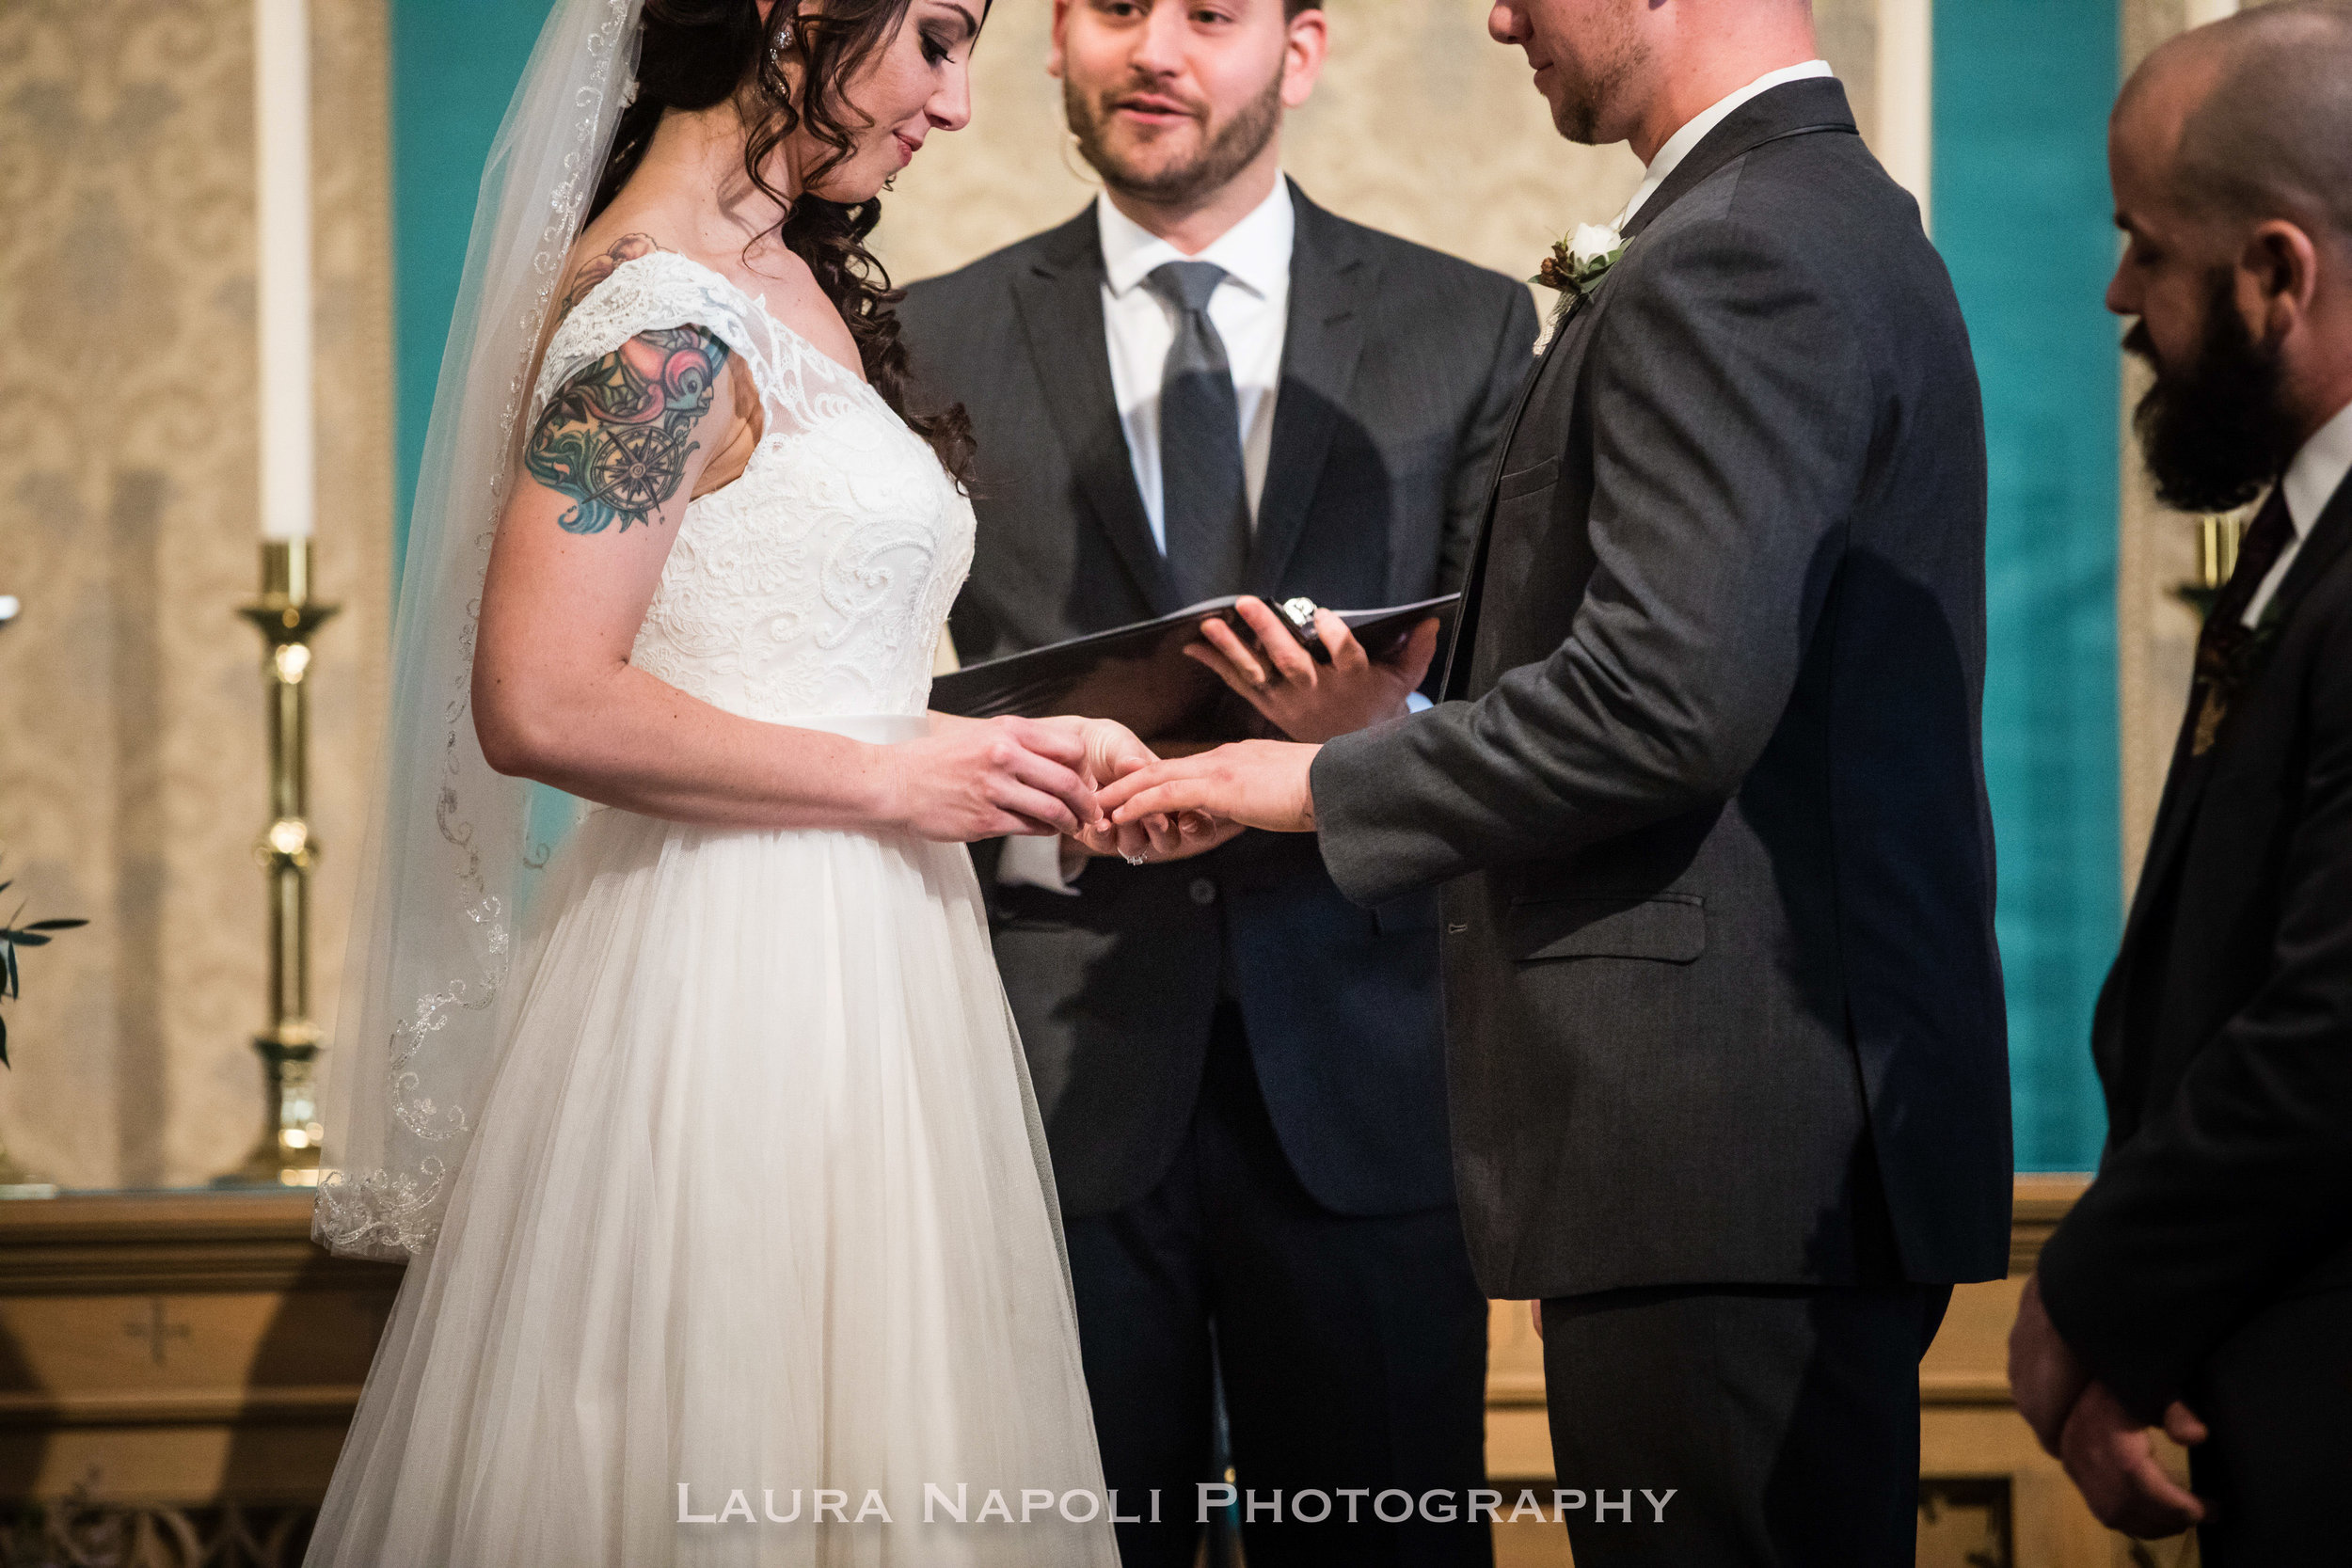 runningdeerweddingNJ-16.jpg